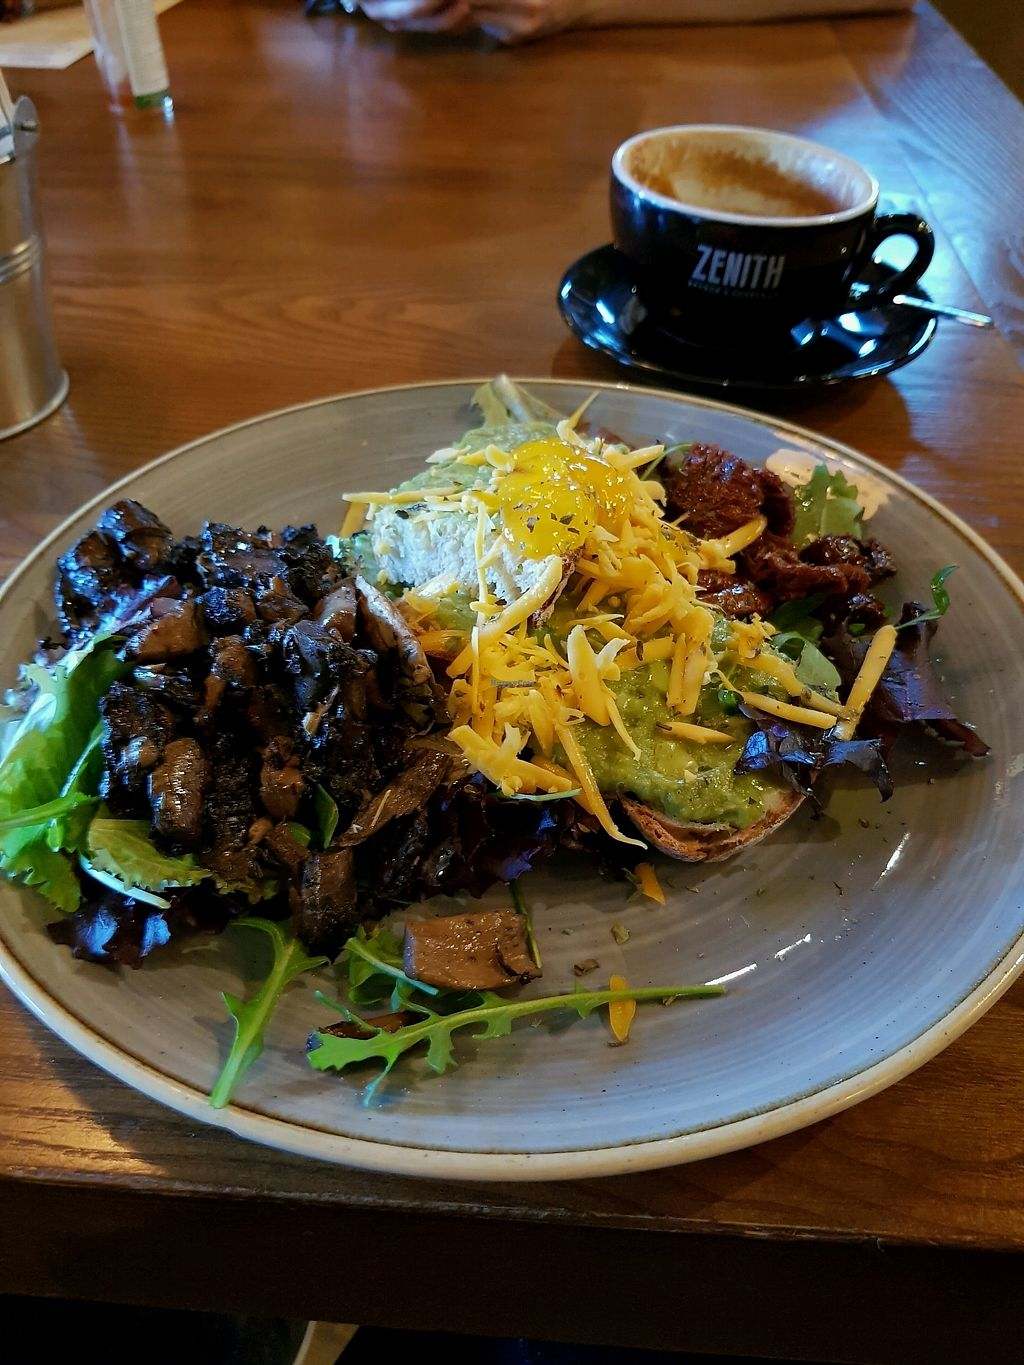 """Photo of Zenith  by <a href=""""/members/profile/SerenaA"""">SerenaA</a> <br/>toast with avocado,vegan cheese,mushroom and sundried tomatoes <br/> December 21, 2017  - <a href='/contact/abuse/image/98408/337835'>Report</a>"""